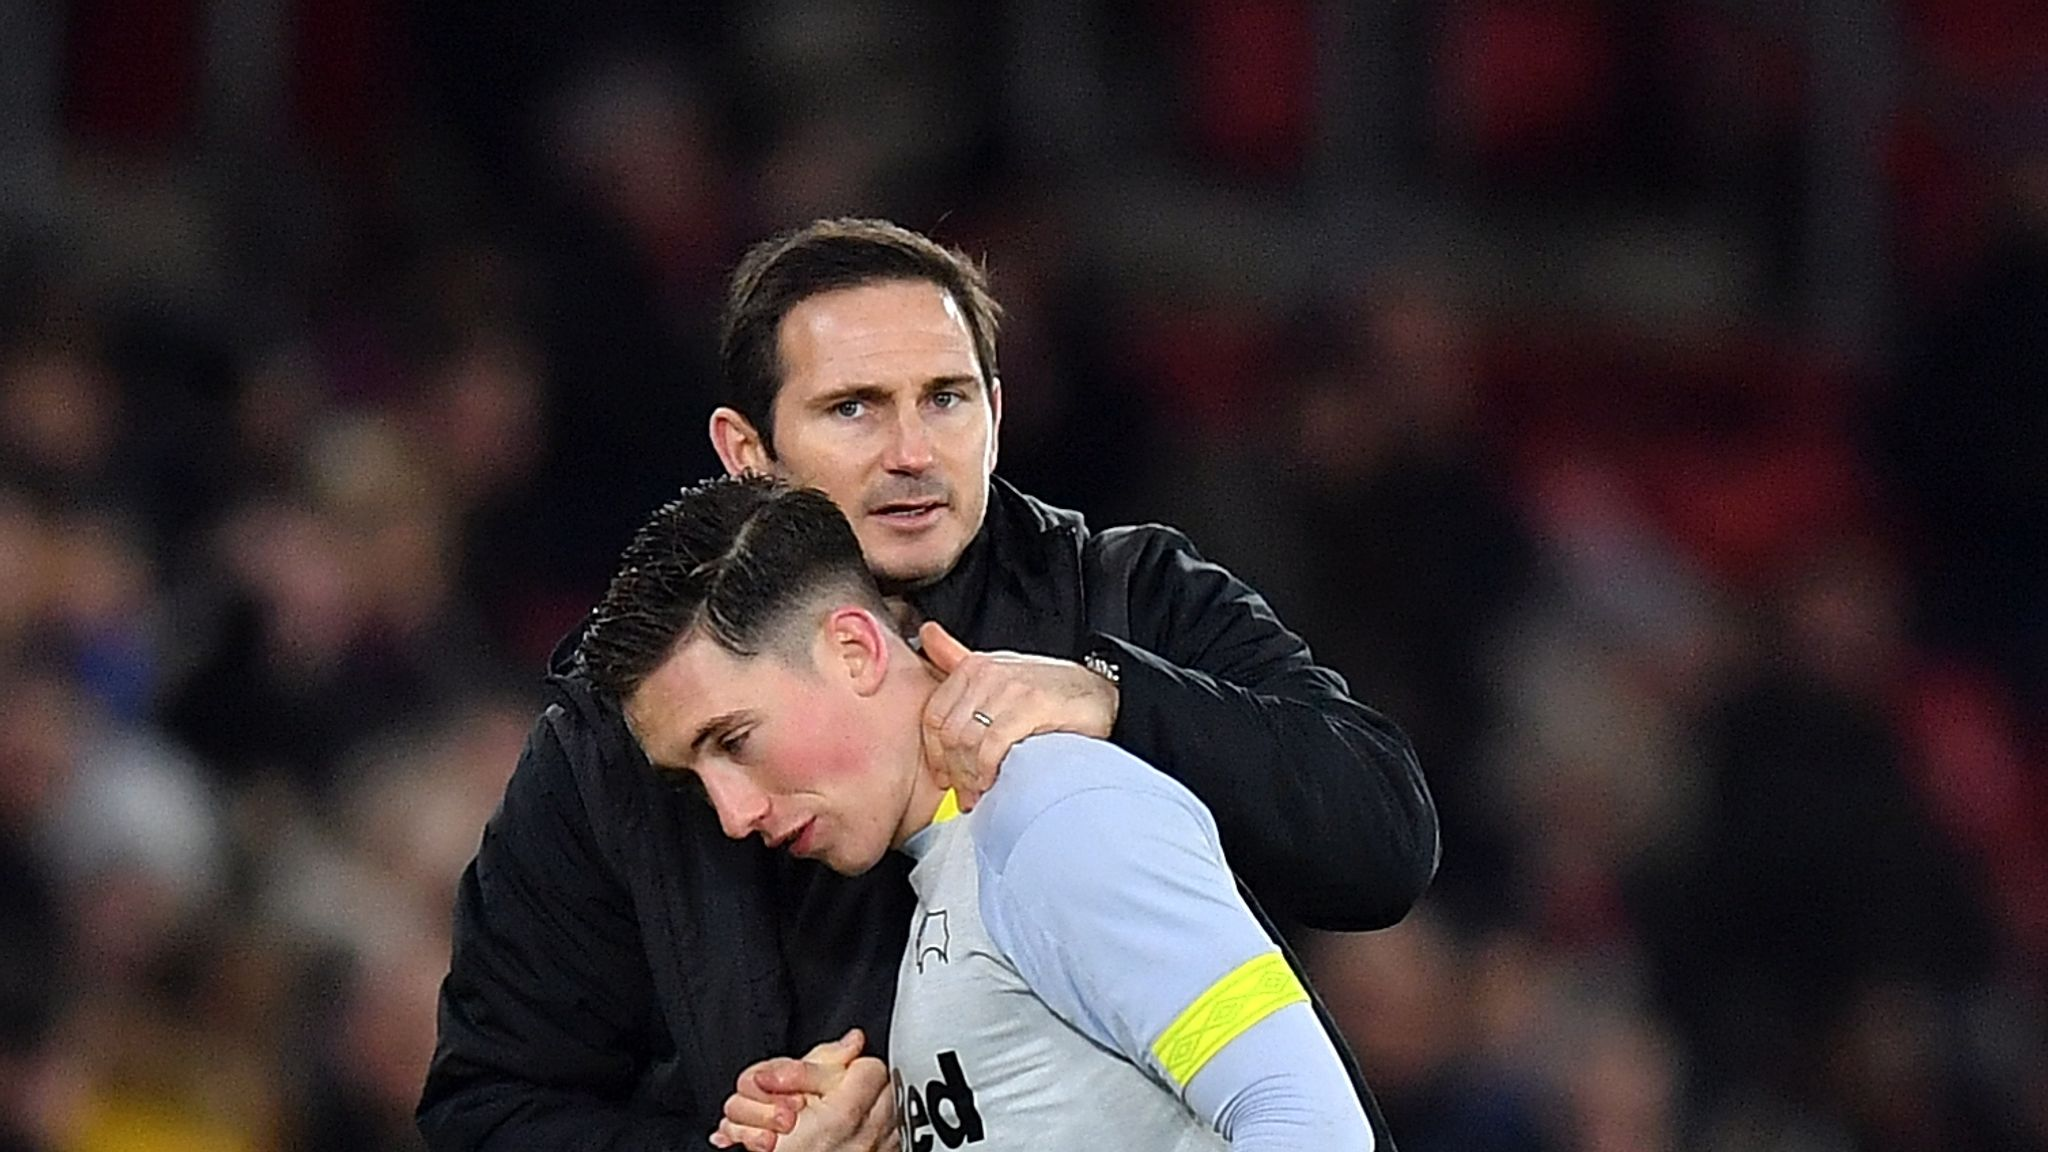 Bournemouth's Harry Wilson: I owe Chelsea's Frank Lampard for Derby success